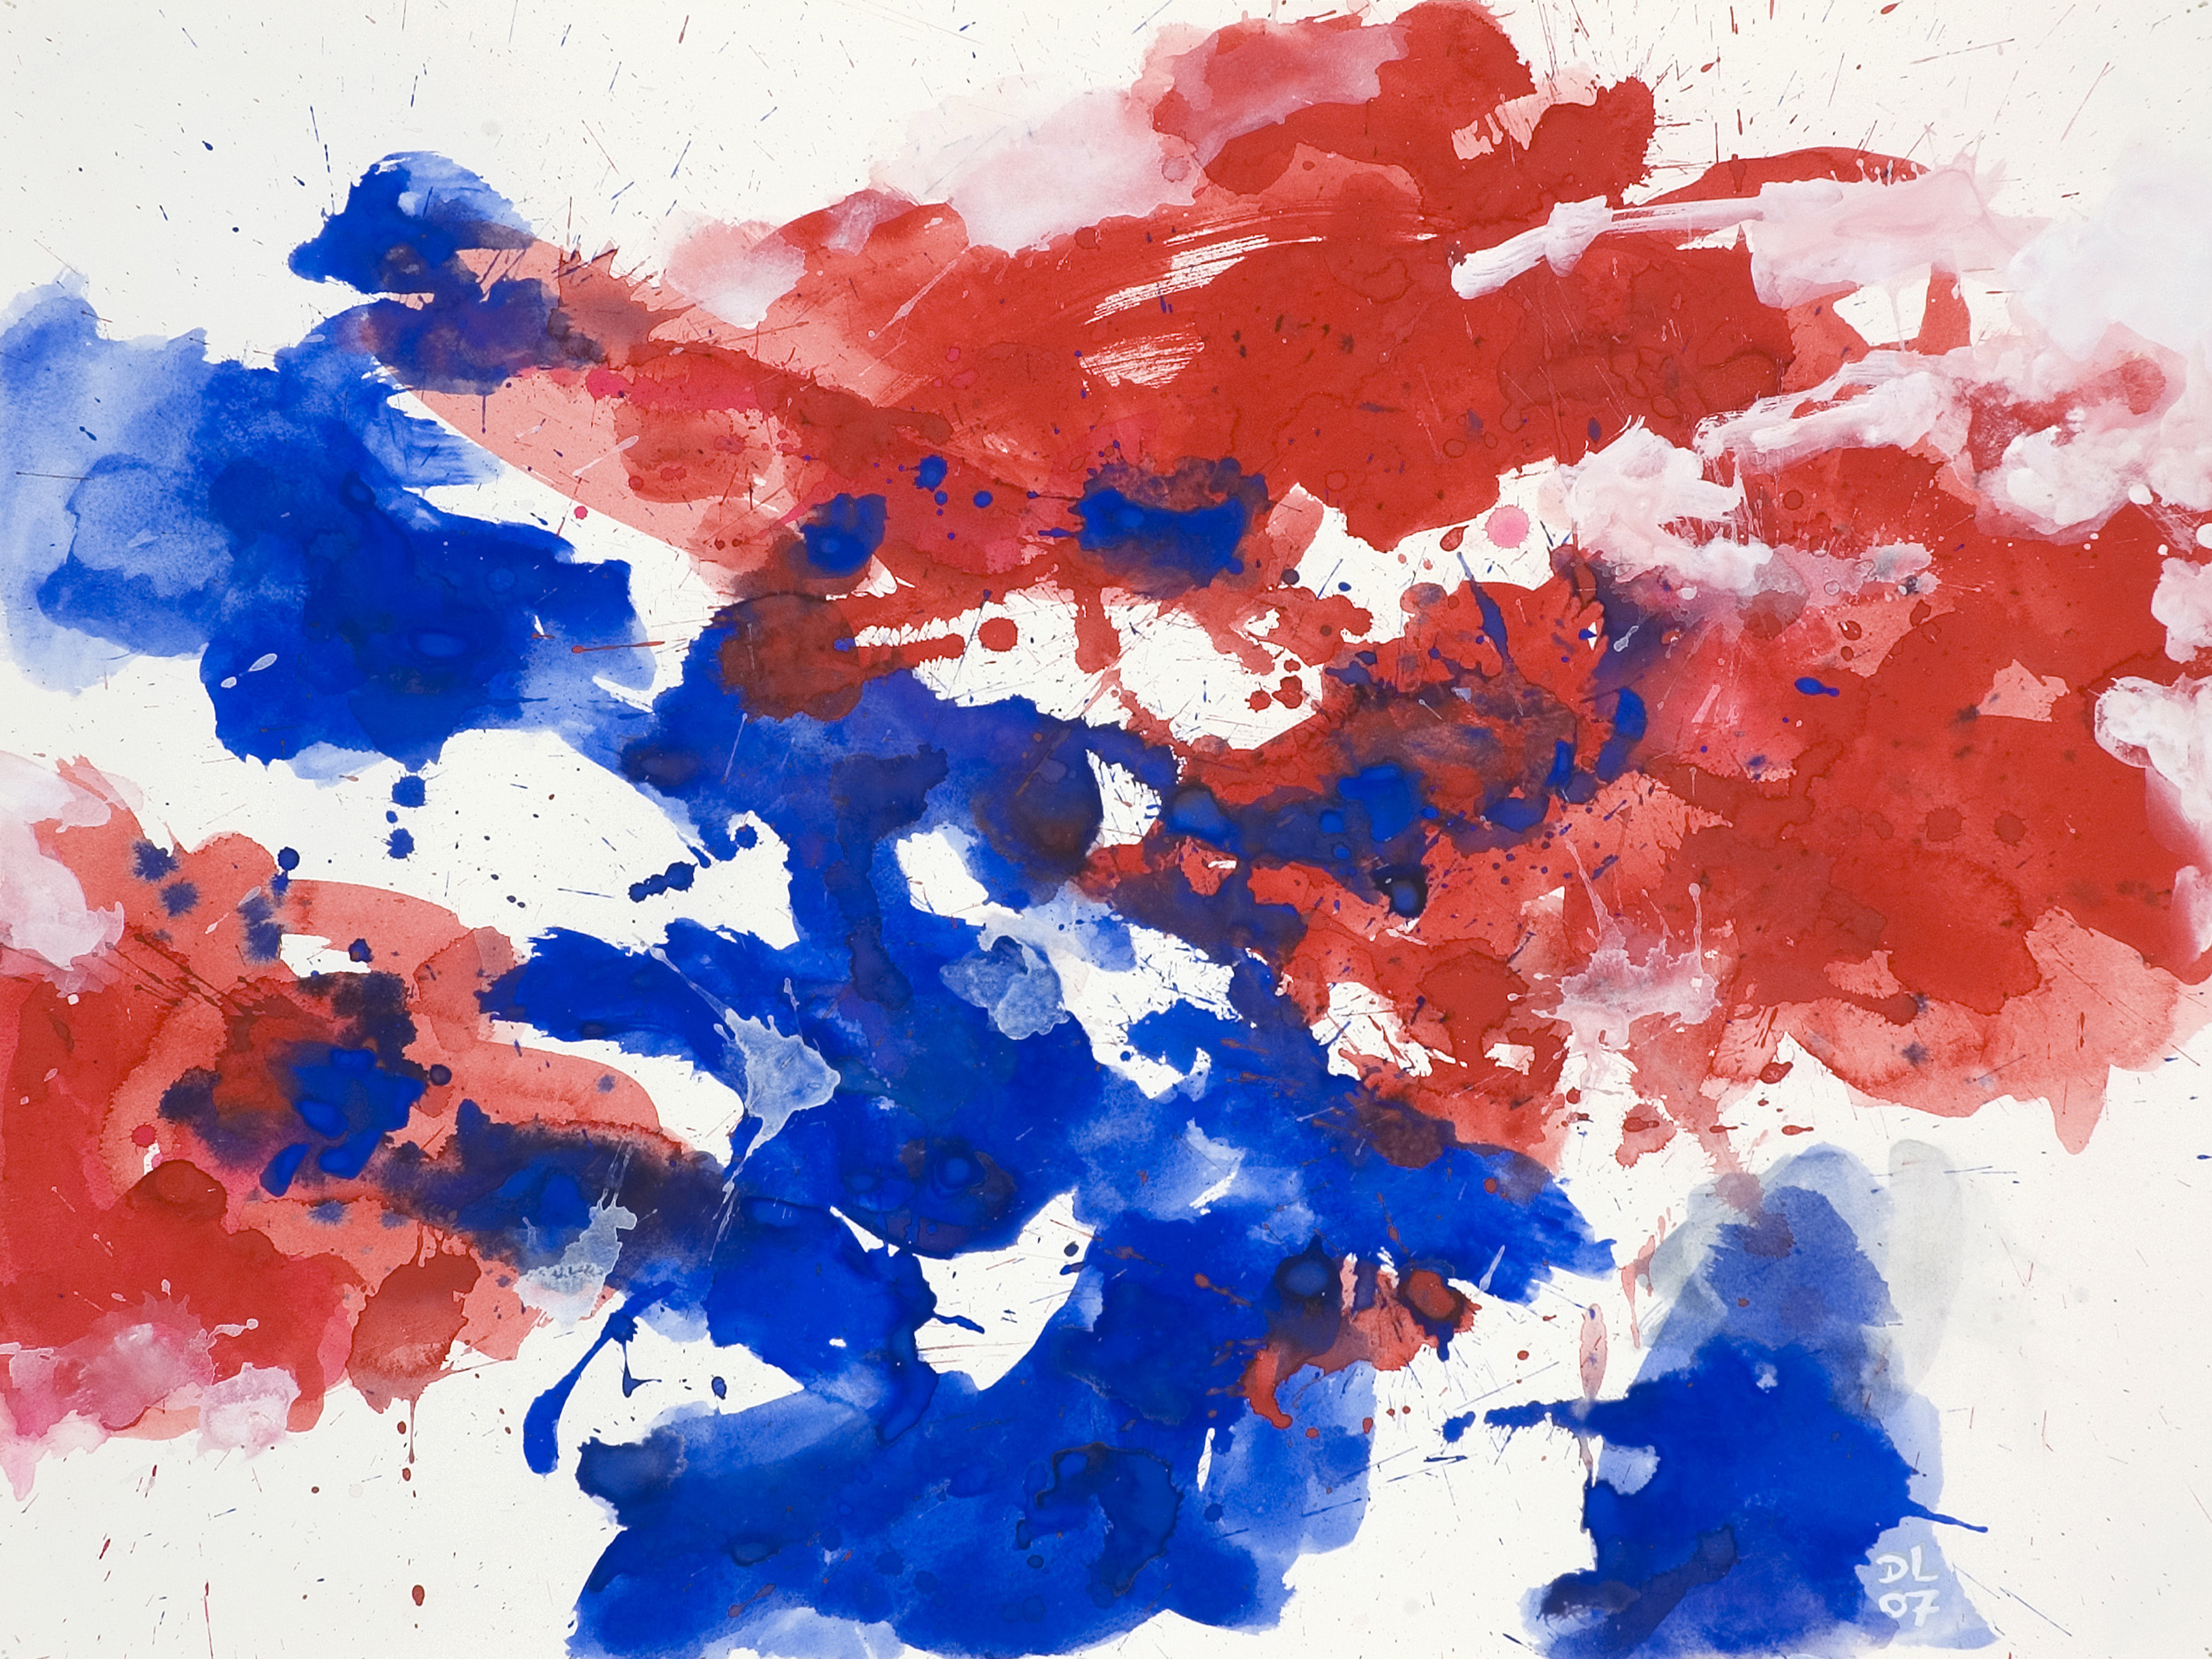 39 red blue 39 abstract watercolor painting on paper nr. Black Bedroom Furniture Sets. Home Design Ideas